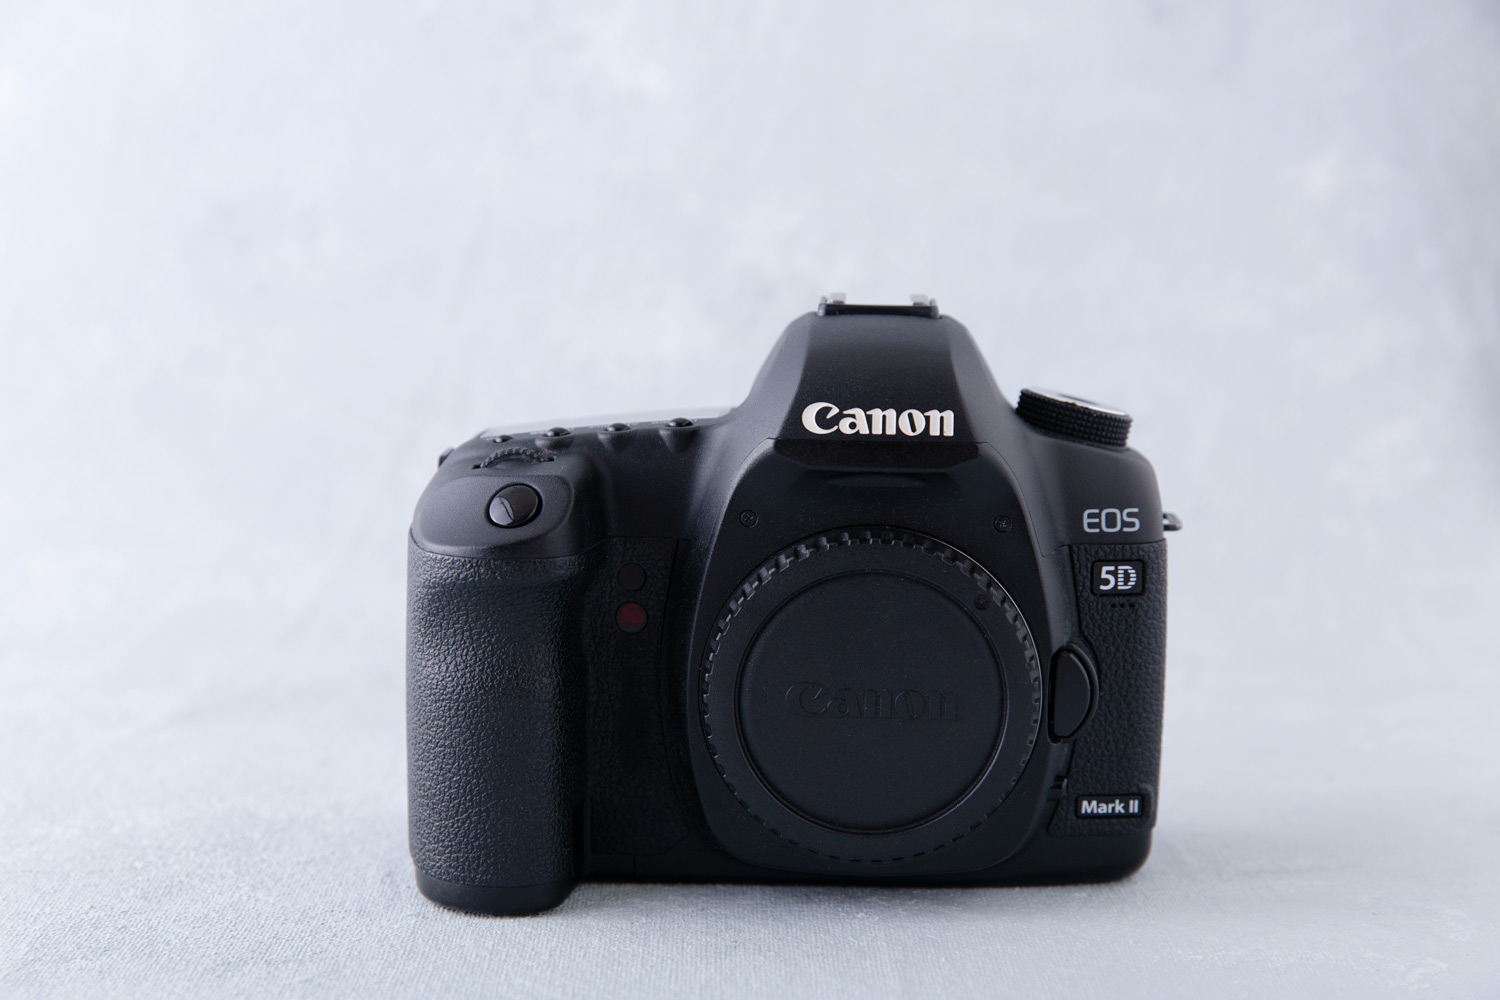 Image: I shoot with a full frame Canon 5D Mark II.